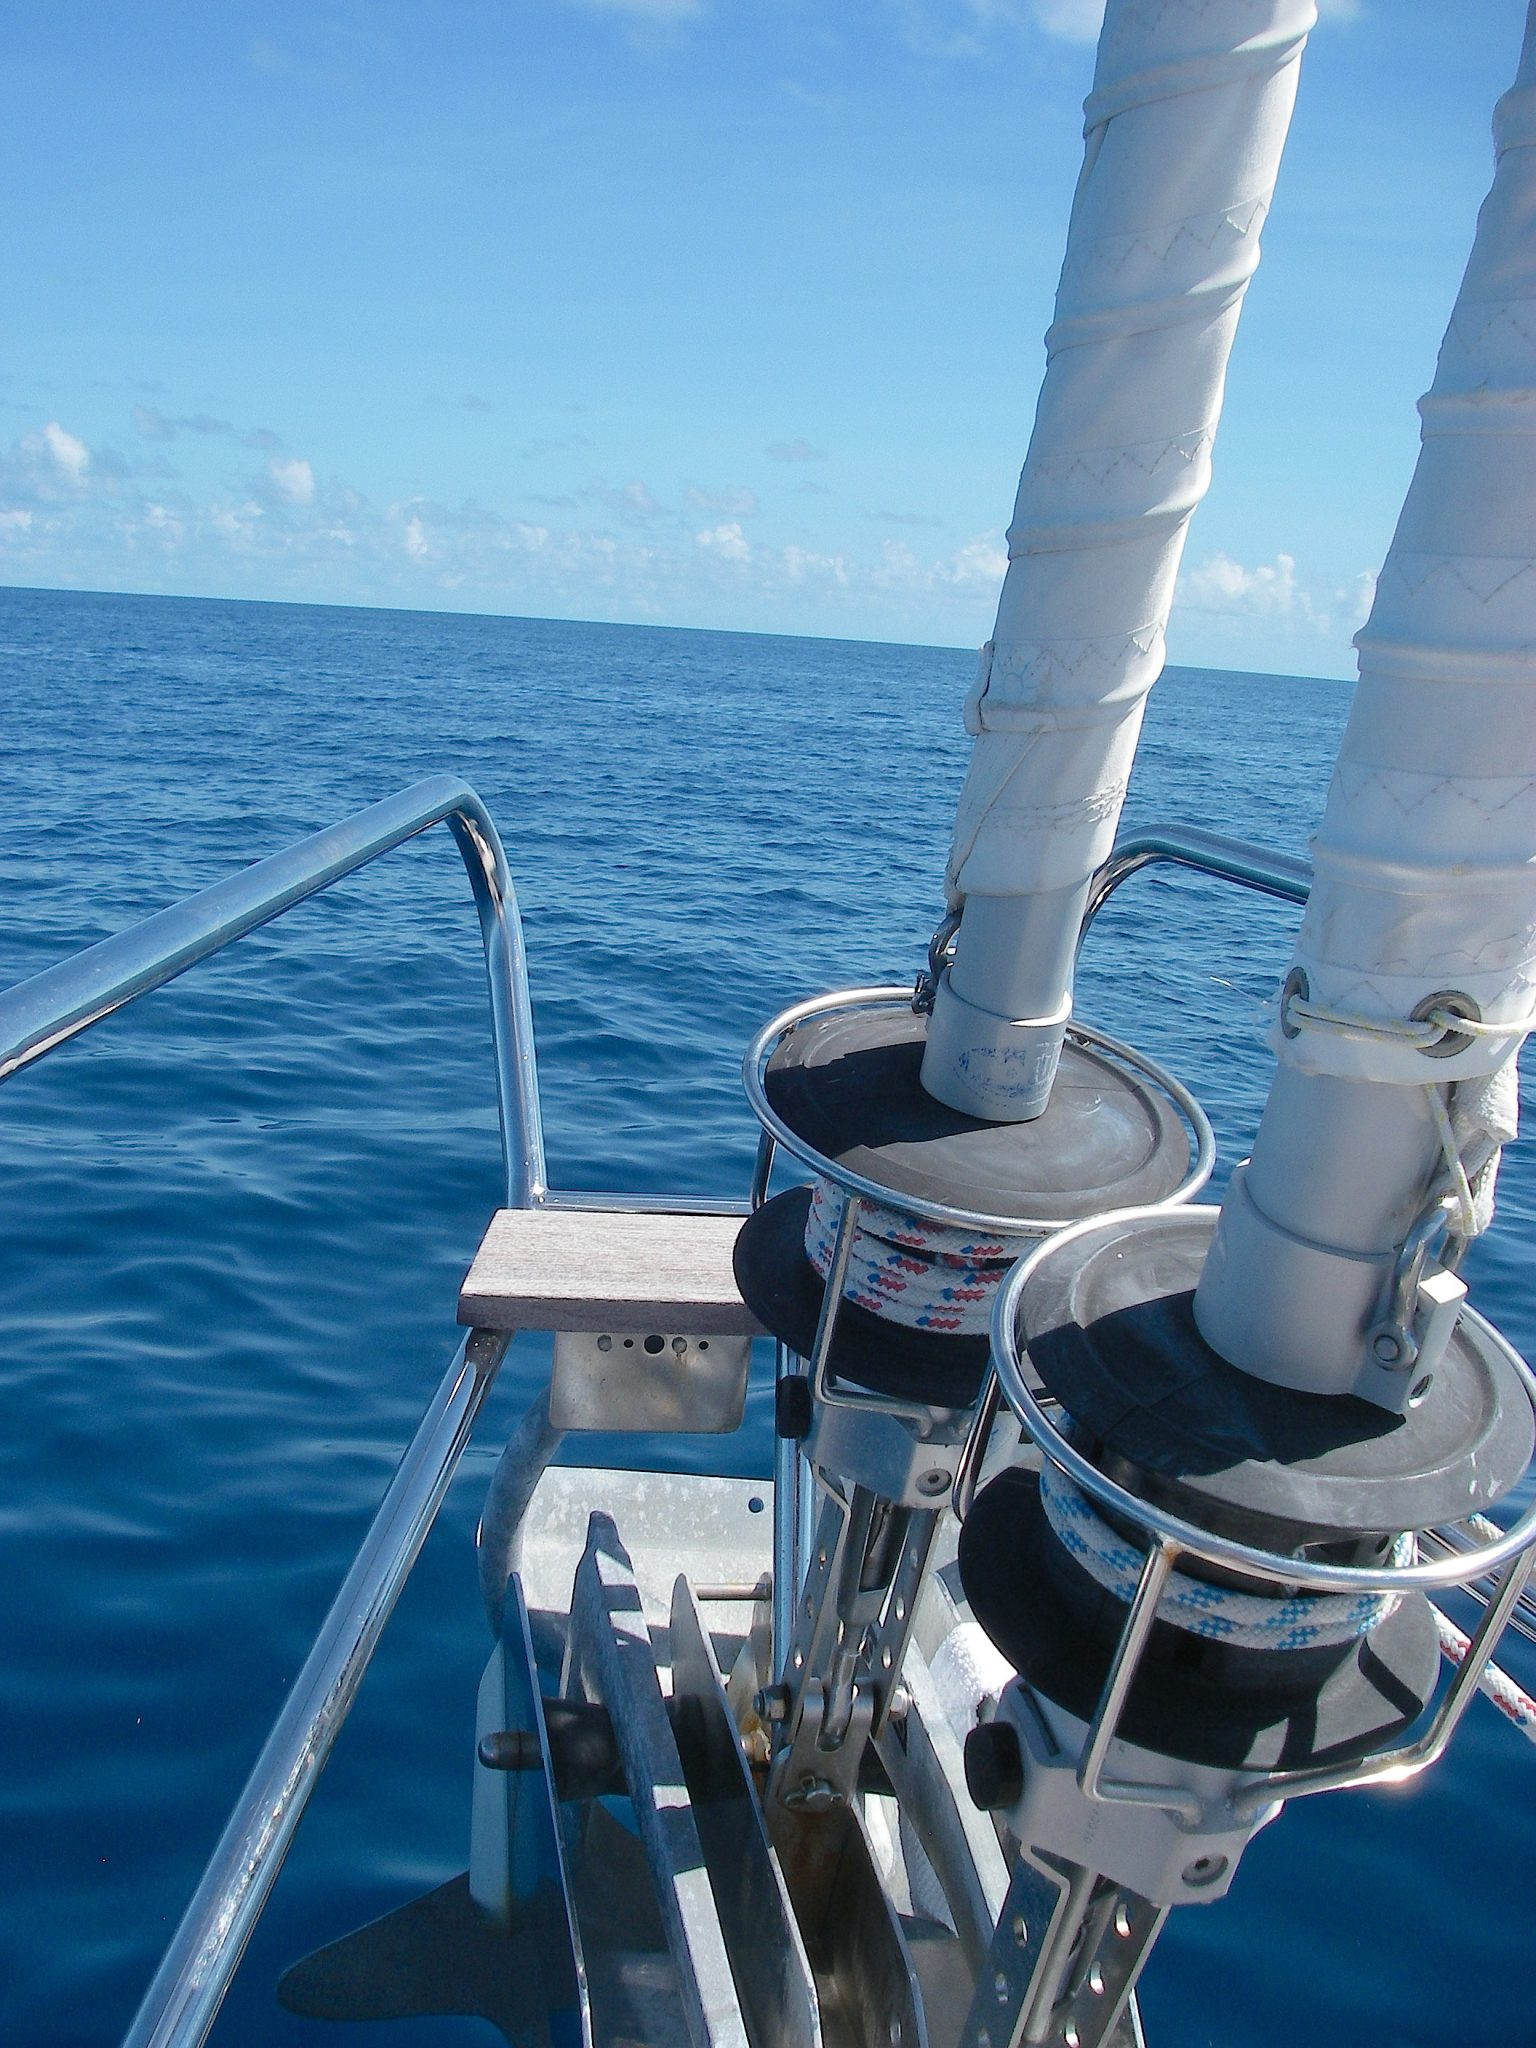 53-the-first-day-sailing-through-the-great-barrier-reef-via-the-excellent-hydrographers-pass-the-water-was-flat-but-that-night-the-winds-picked-up-to-gale-force